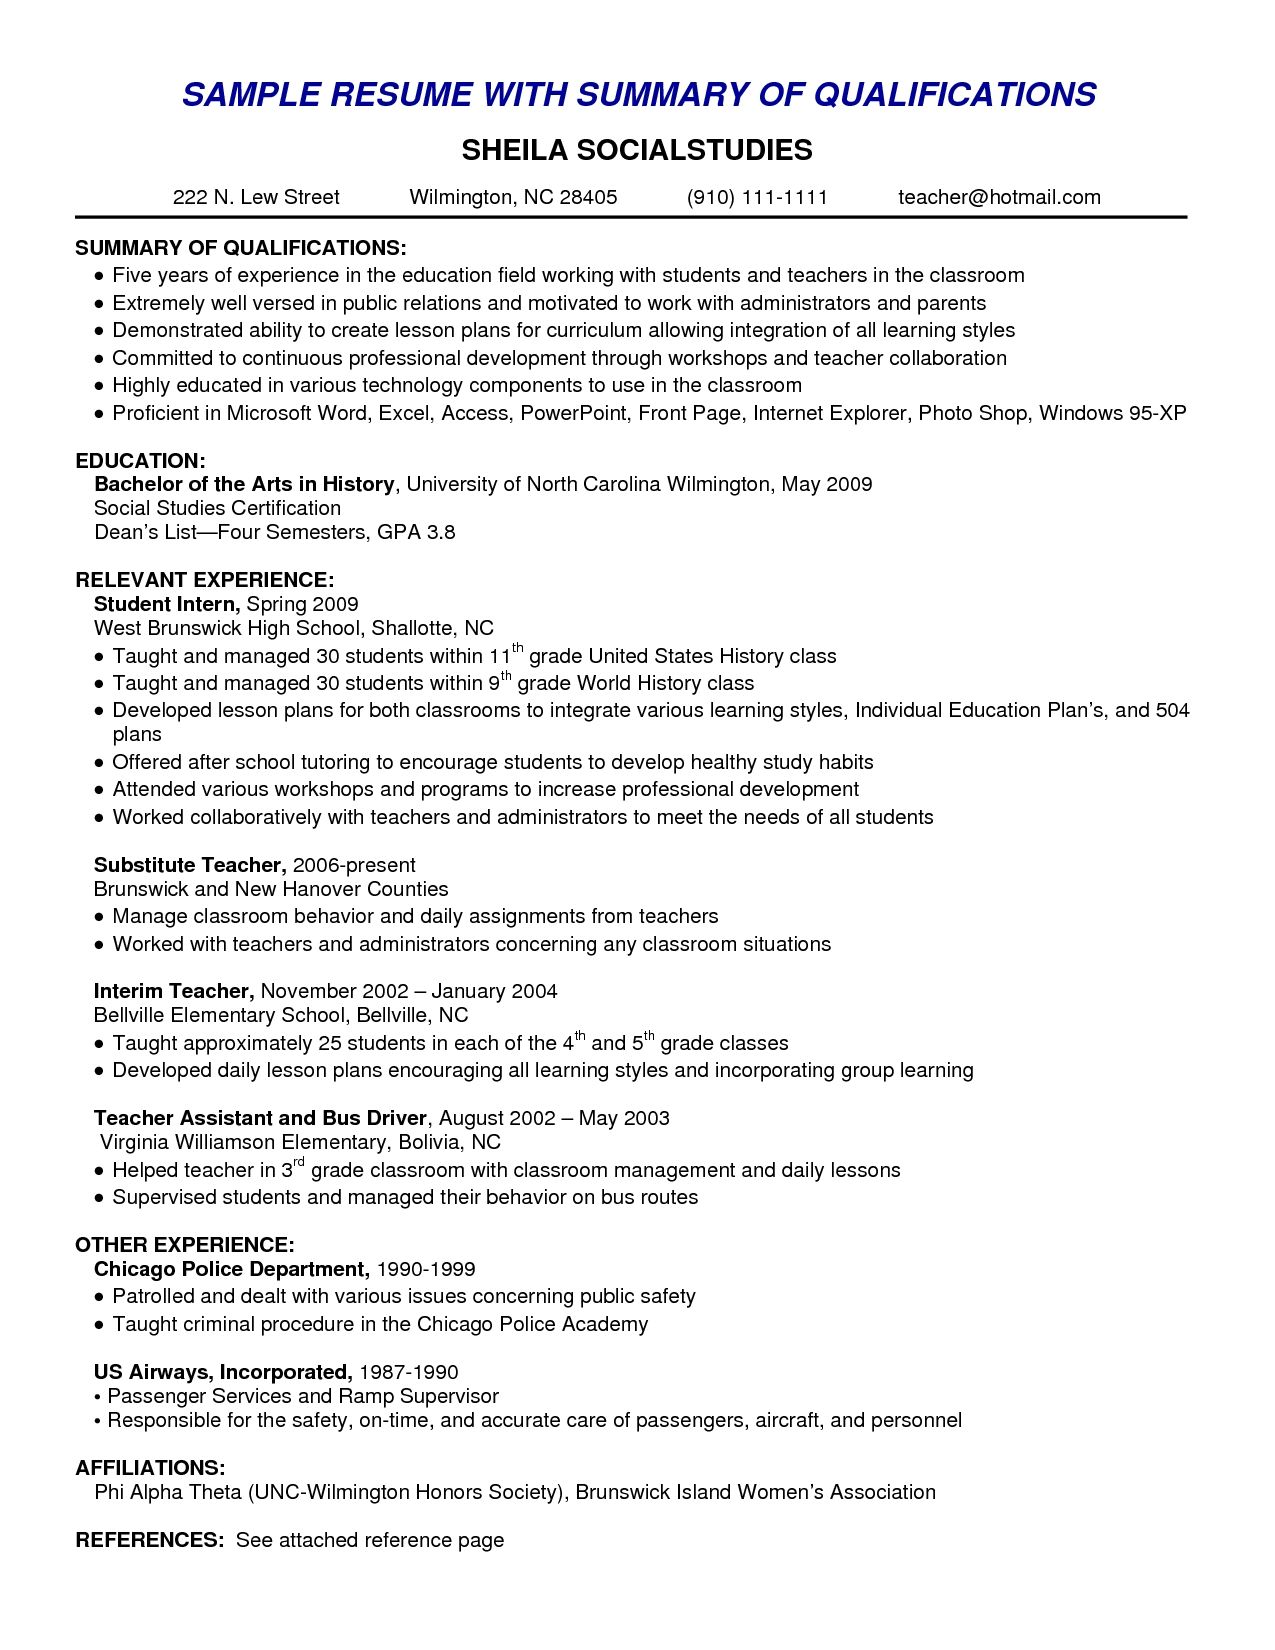 Sample Resume Summary Resume Skills Summary Examples Example Of Skills Summary For